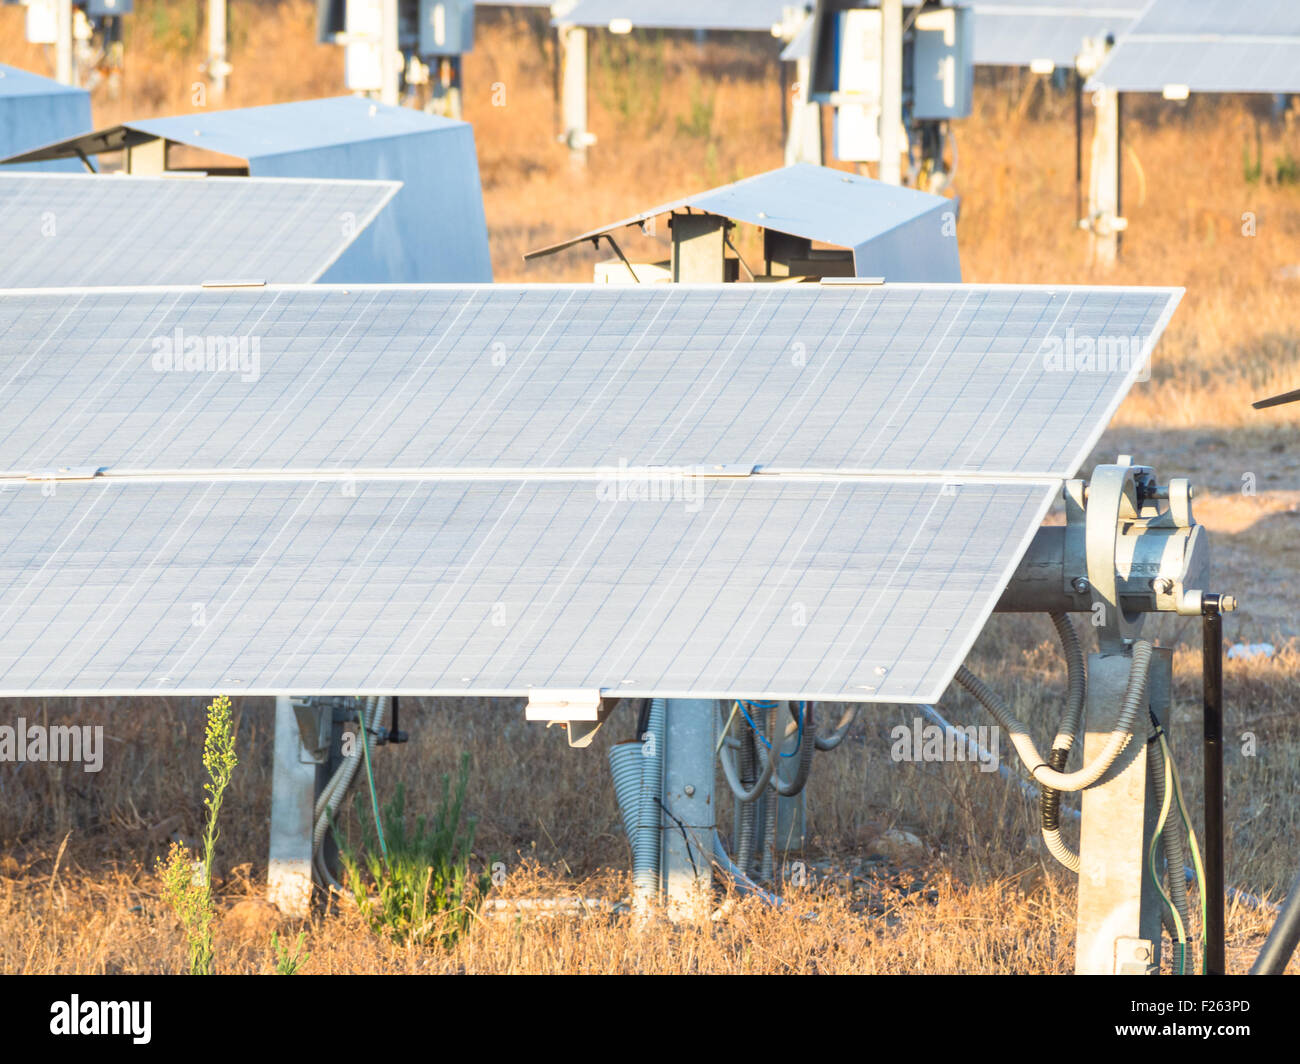 Solar Tracker Stock Photos Amp Solar Tracker Stock Images